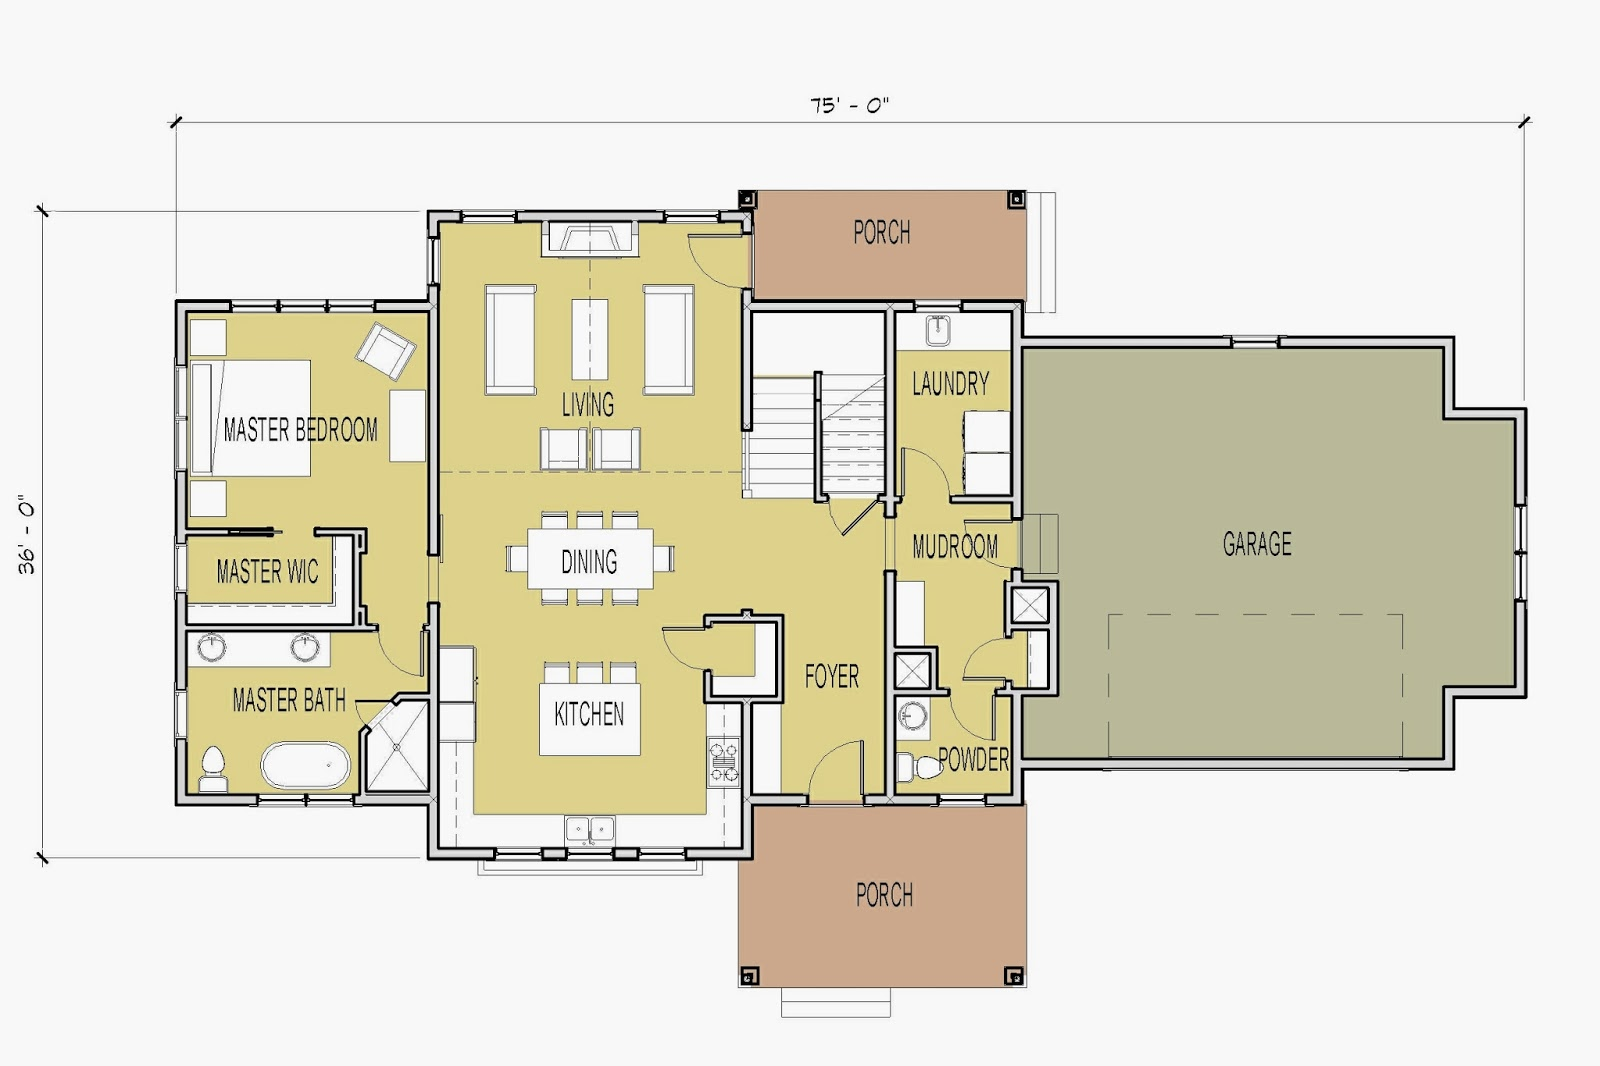 Simply elegant home designs blog new house plan with main for Master on main floor plans